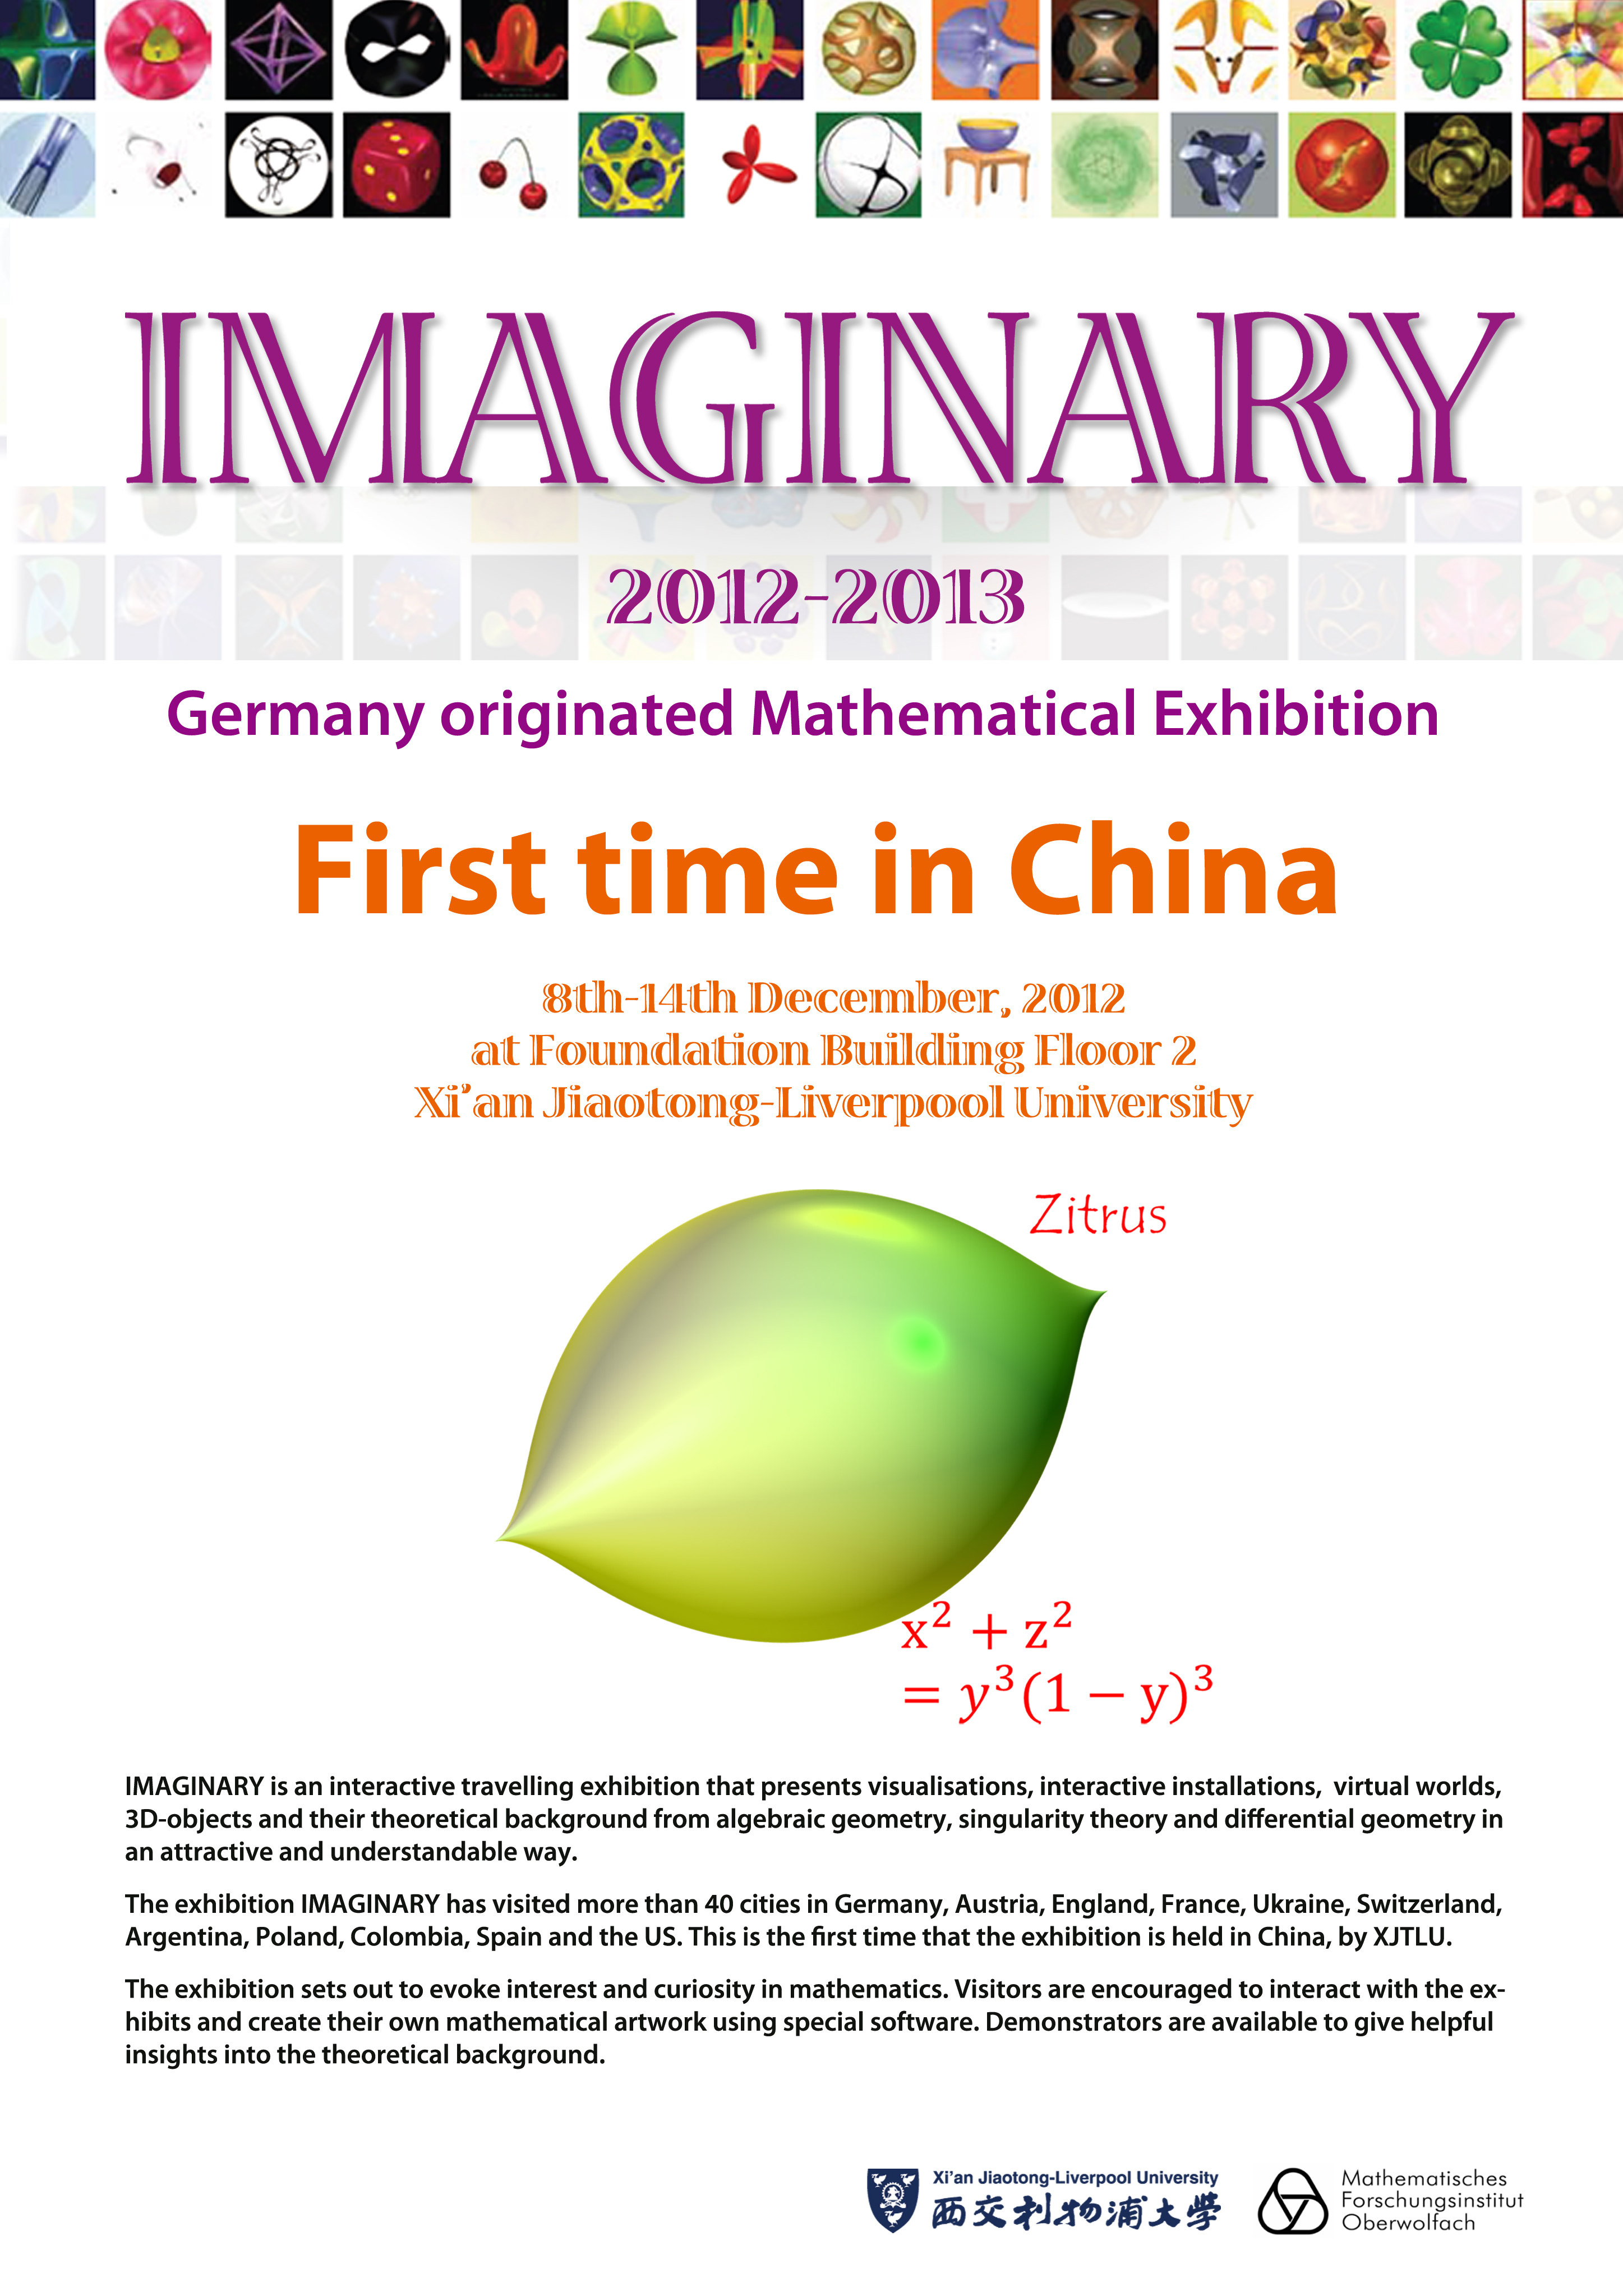 Imaginary at xian jiaotong liverpool university imaginary exhibition invitation card en cn pdf stopboris Image collections